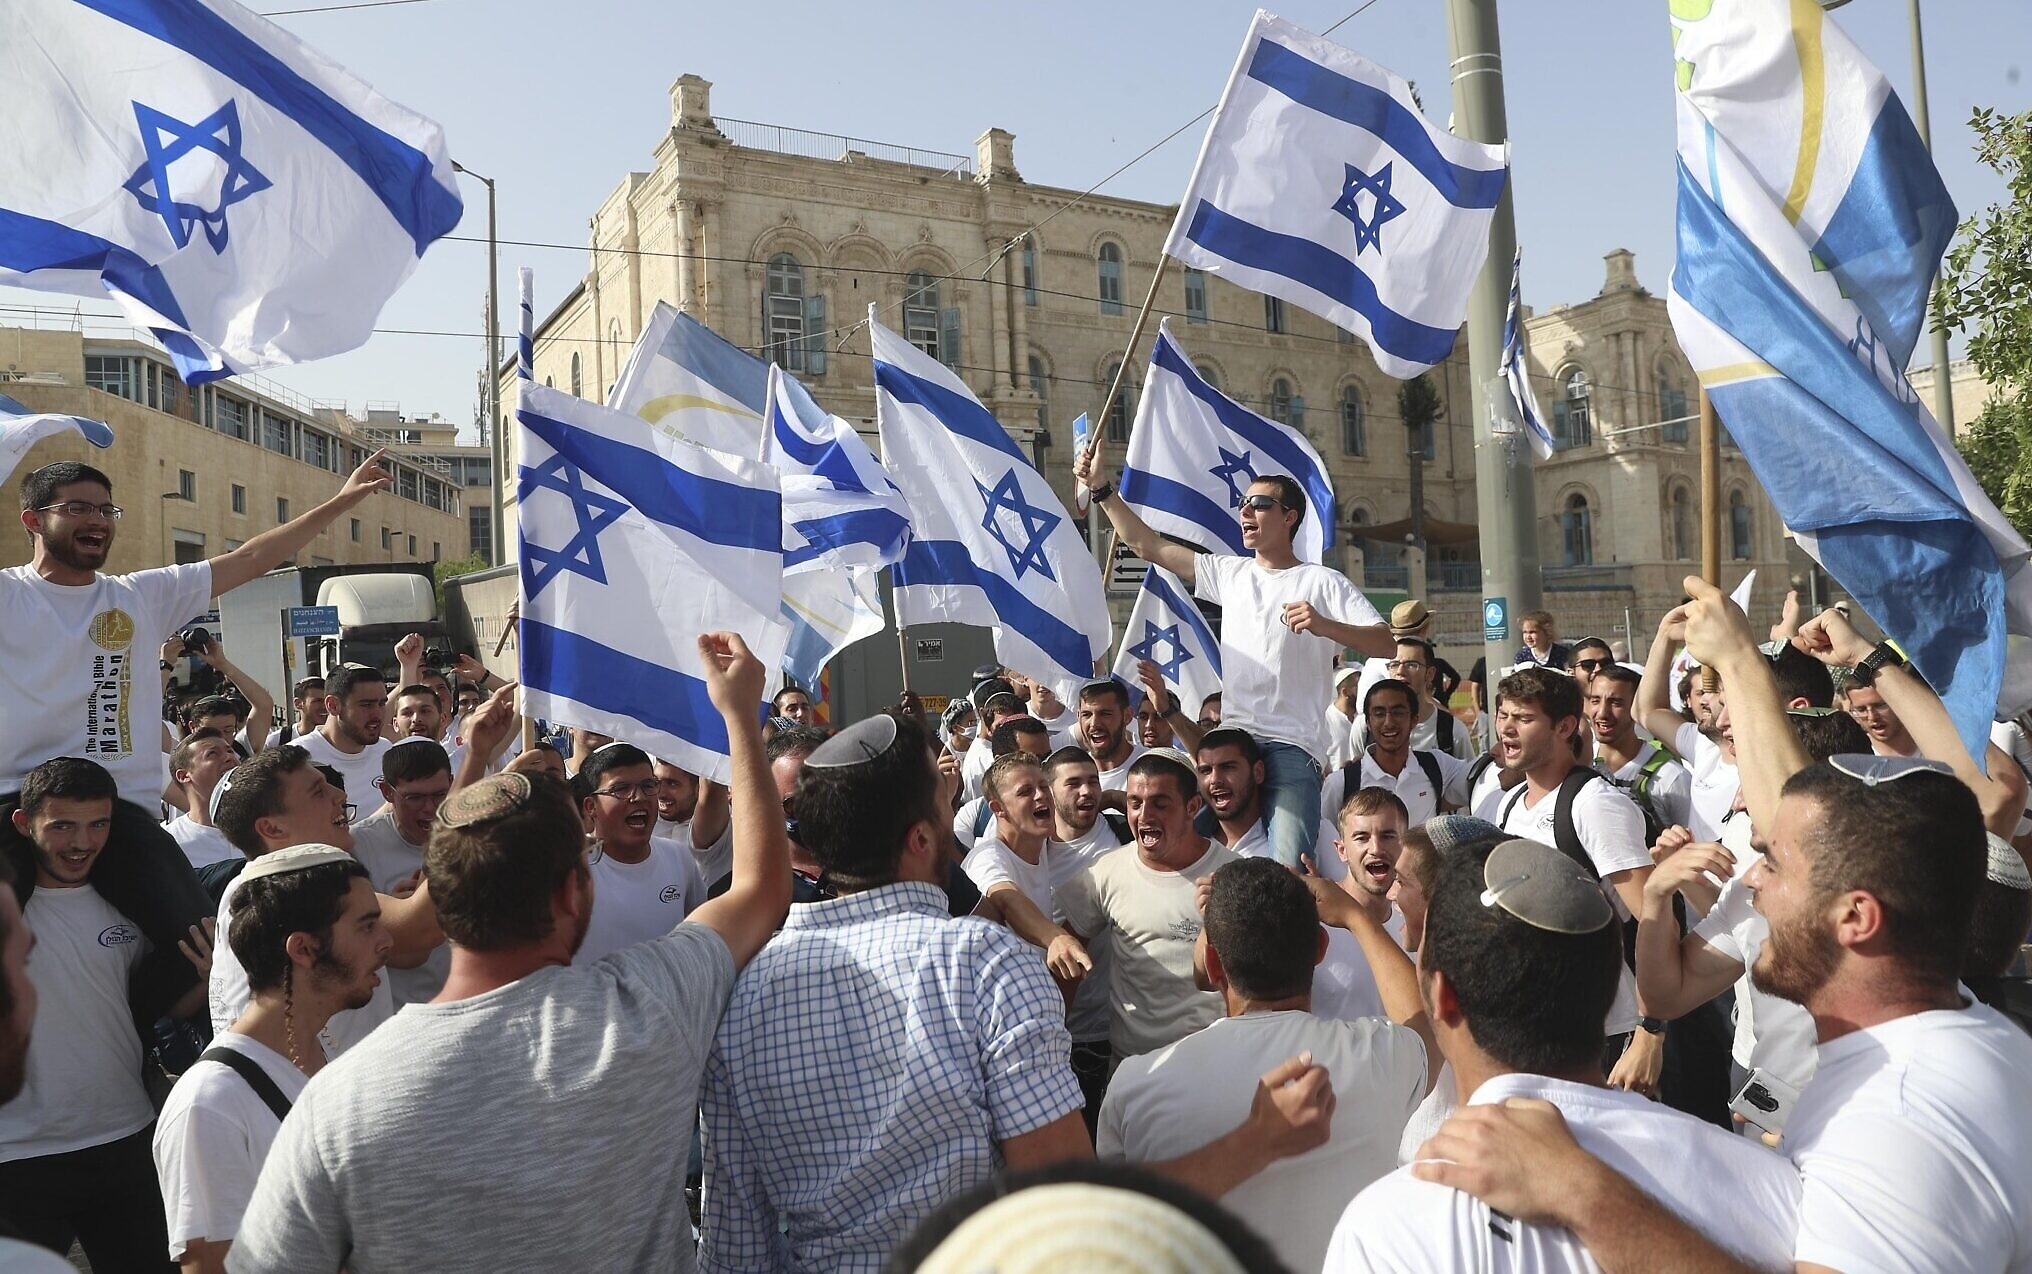 As Hamas Calls Upon Arabs To Protect Al-Aqsa From Jerusalem Flag March, Israeli Defense Minister Calls For Cancellation